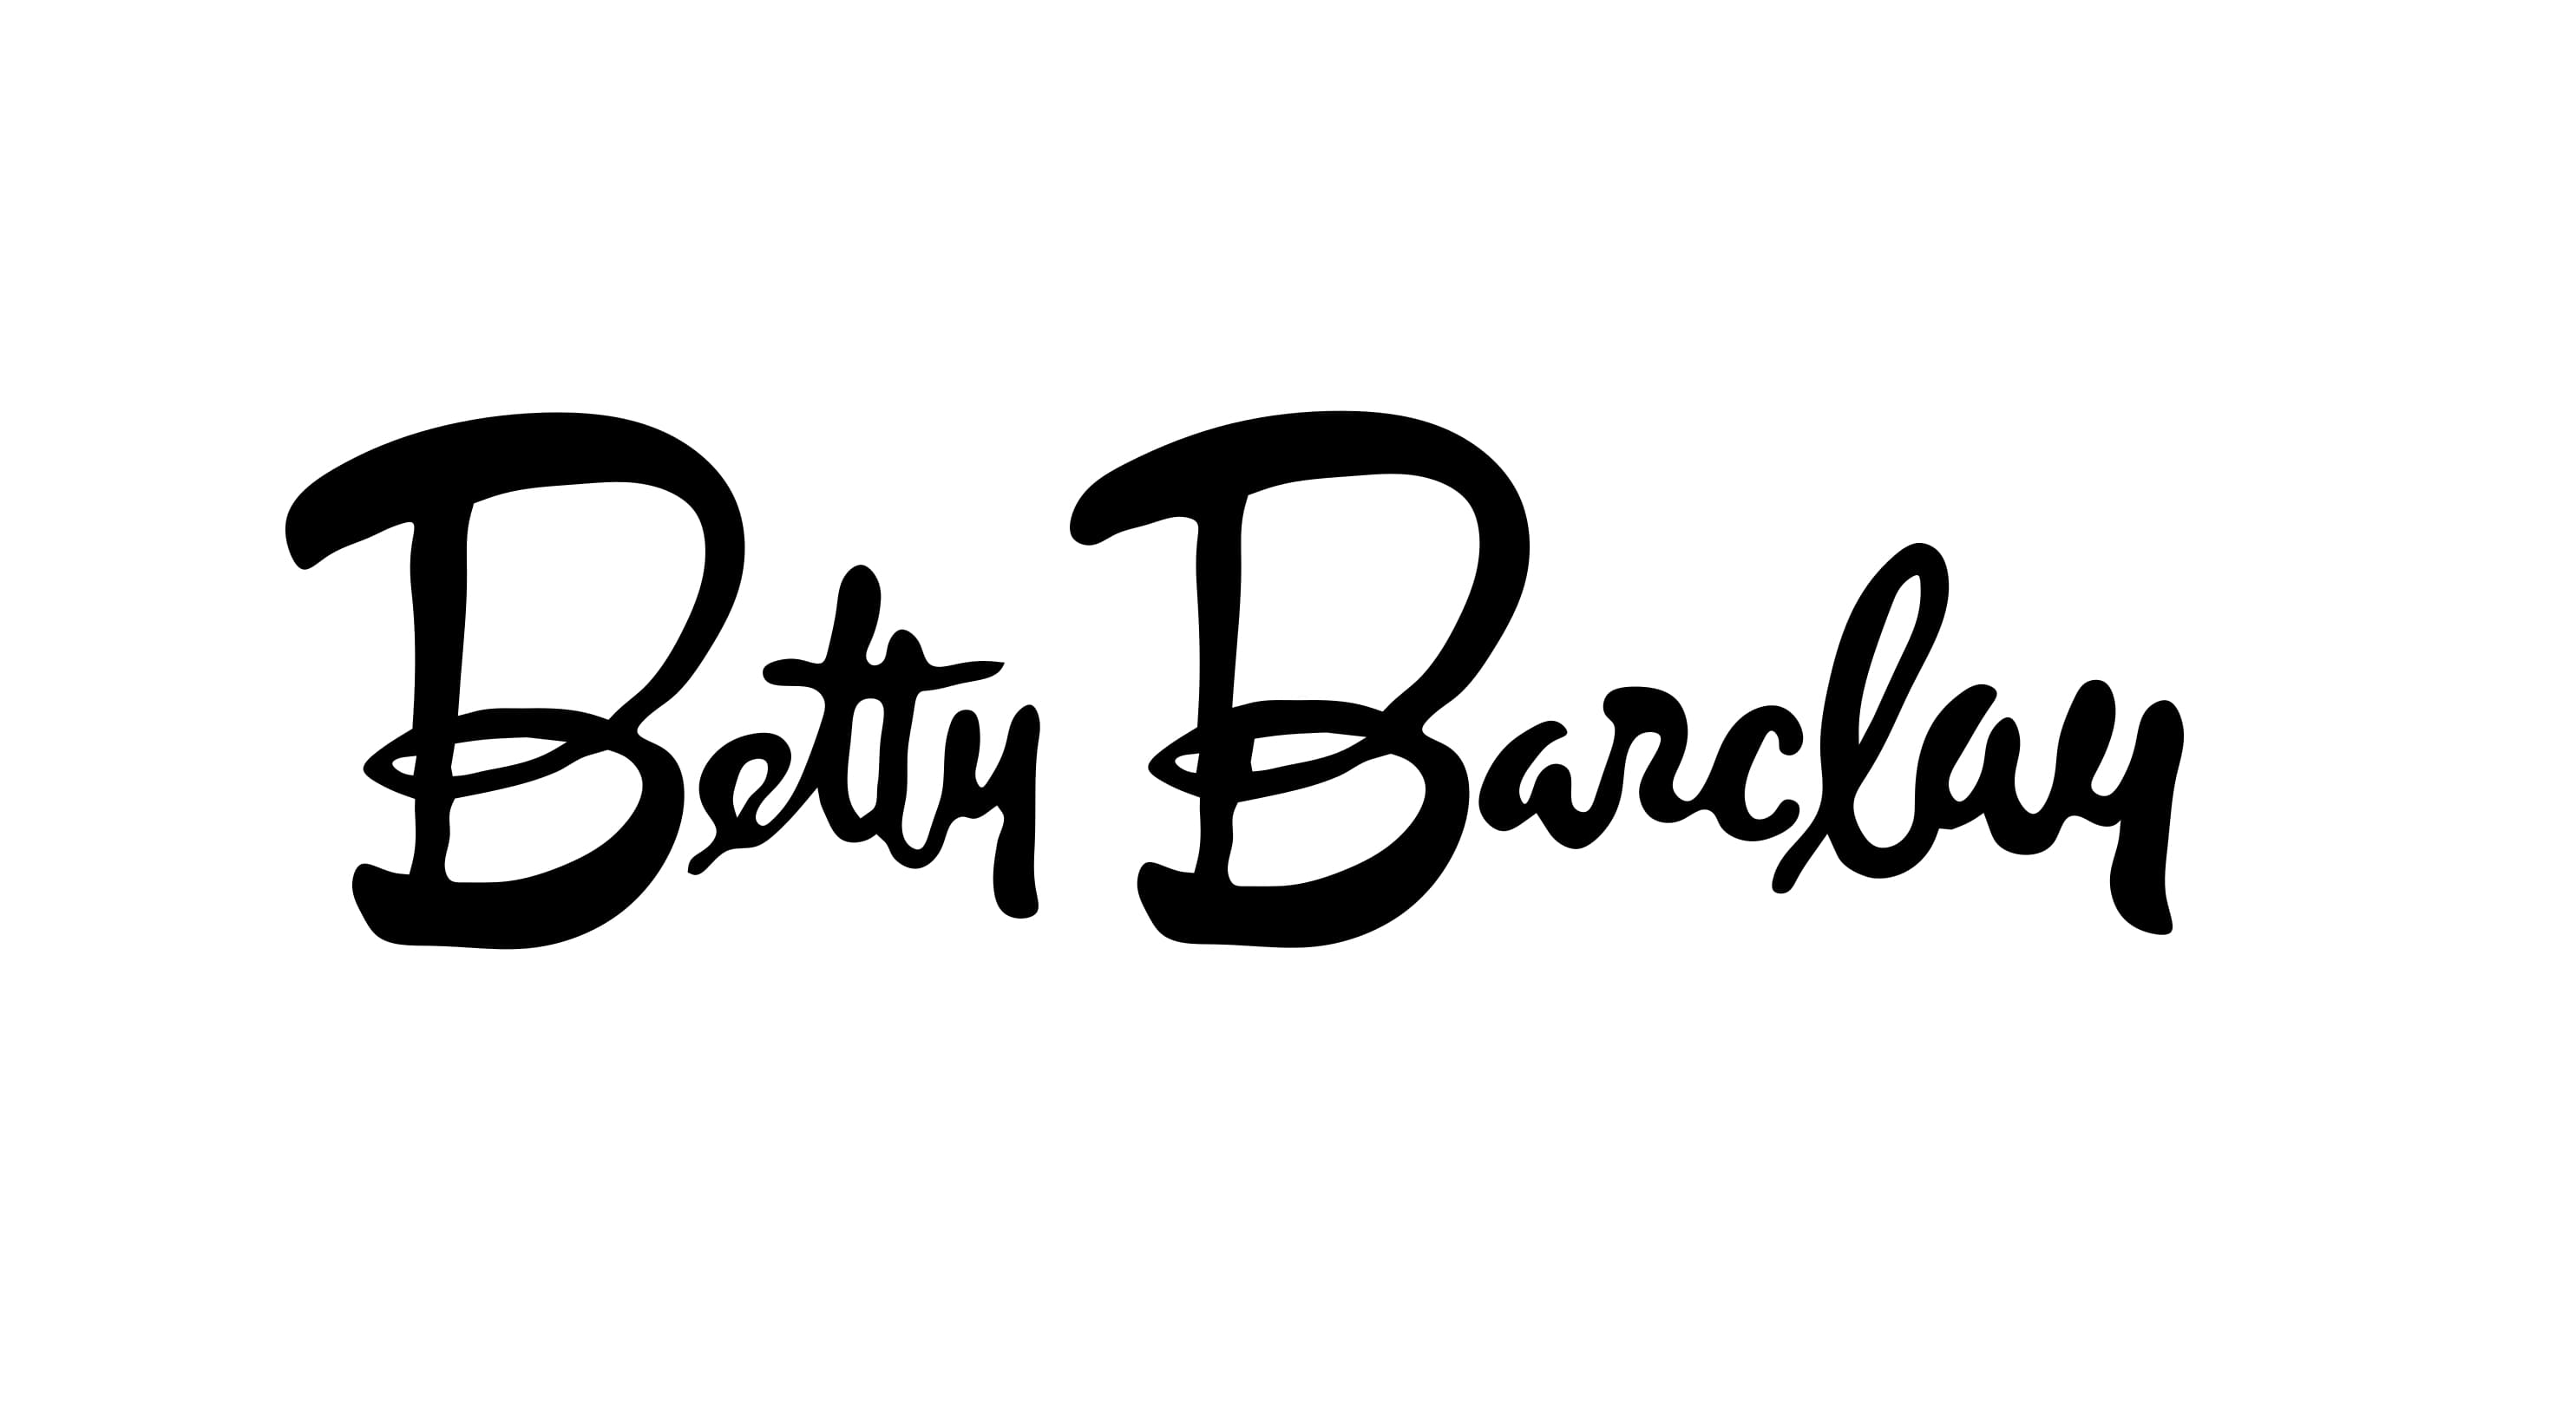 Betty Barclay logo - Marques et logos: histoire et signification | PNG